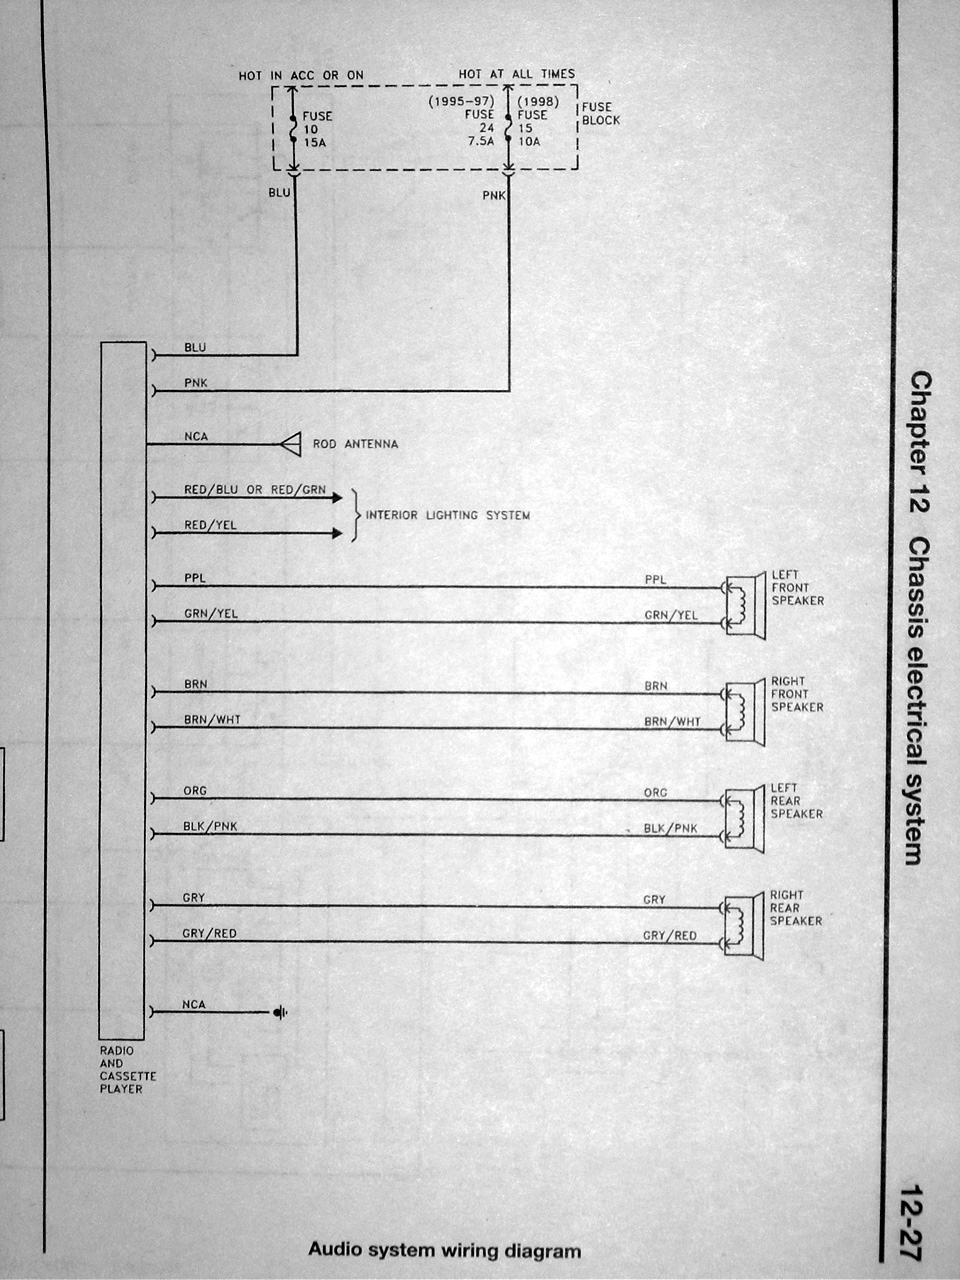 DSC01849 wiring diagram thread *useful info* nissan forum 2000 nissan altima radio wiring harness at suagrazia.org